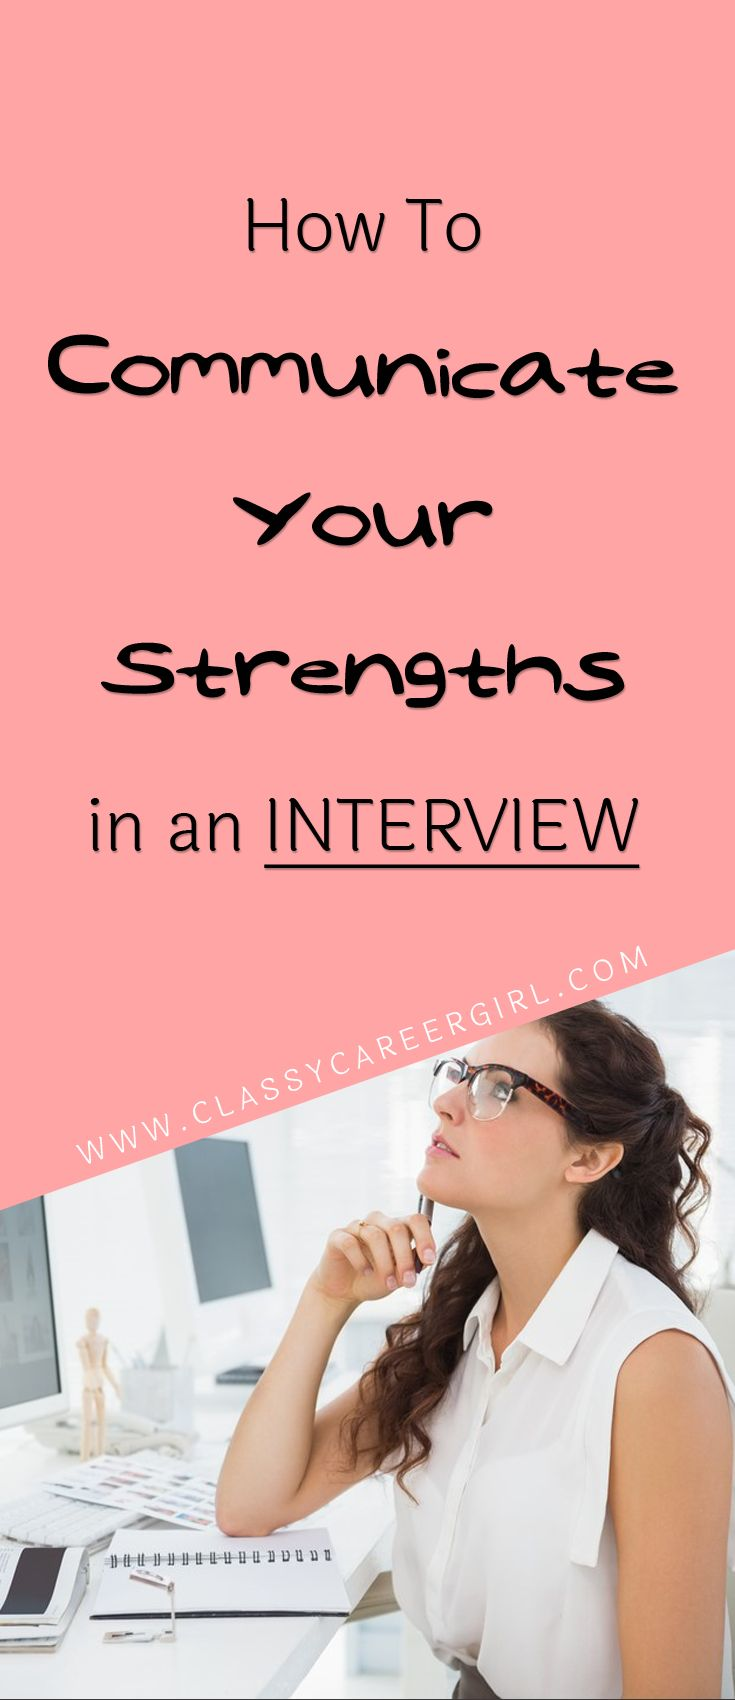 How To Communicate Your Strengths in an